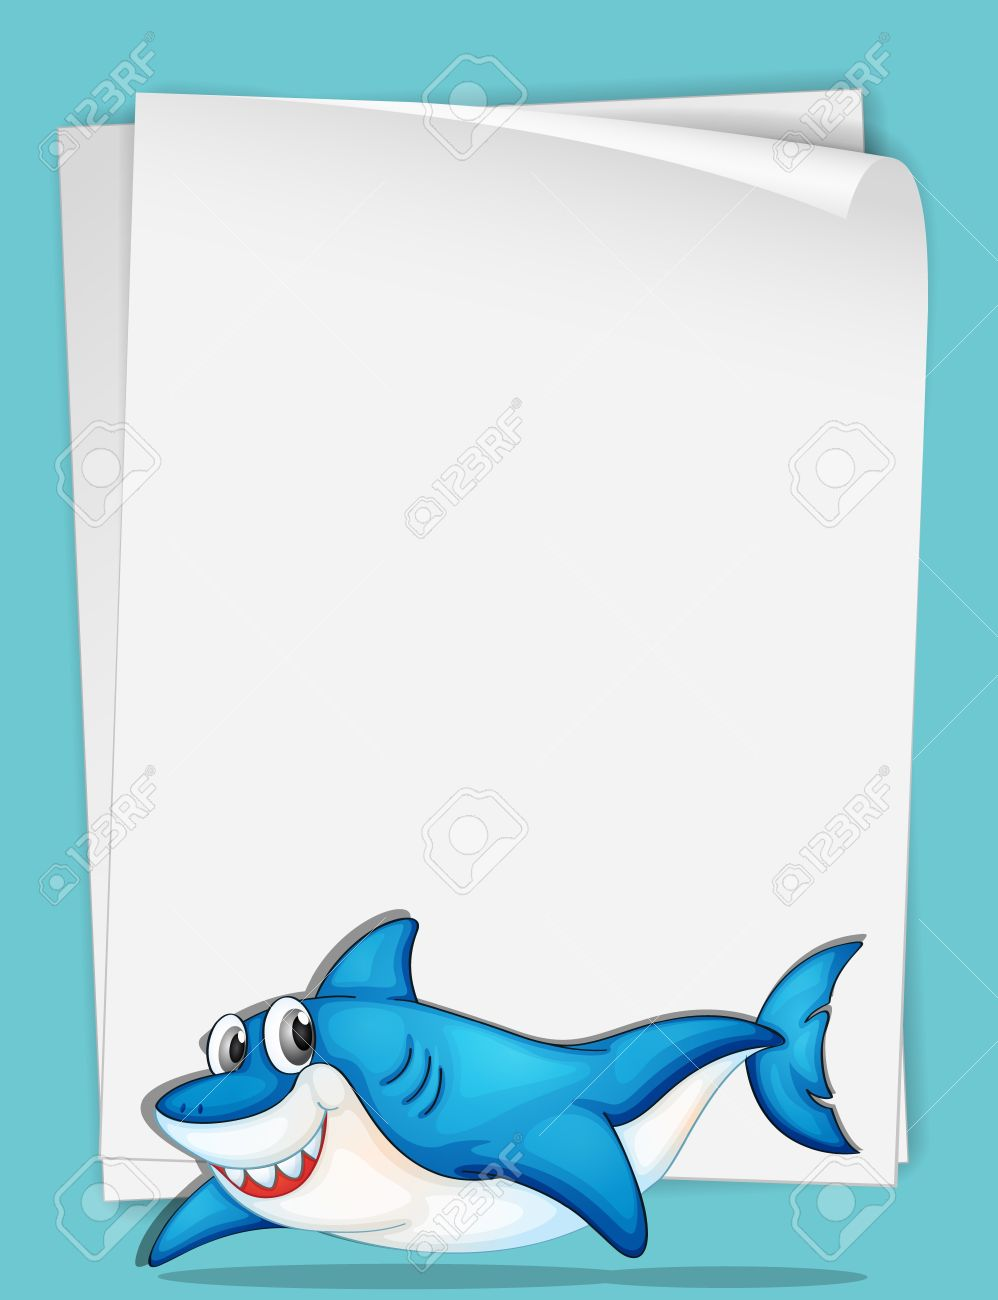 illustration of shark swimming paper royalty cliparts  illustration of shark swimming paper stock vector 13667489